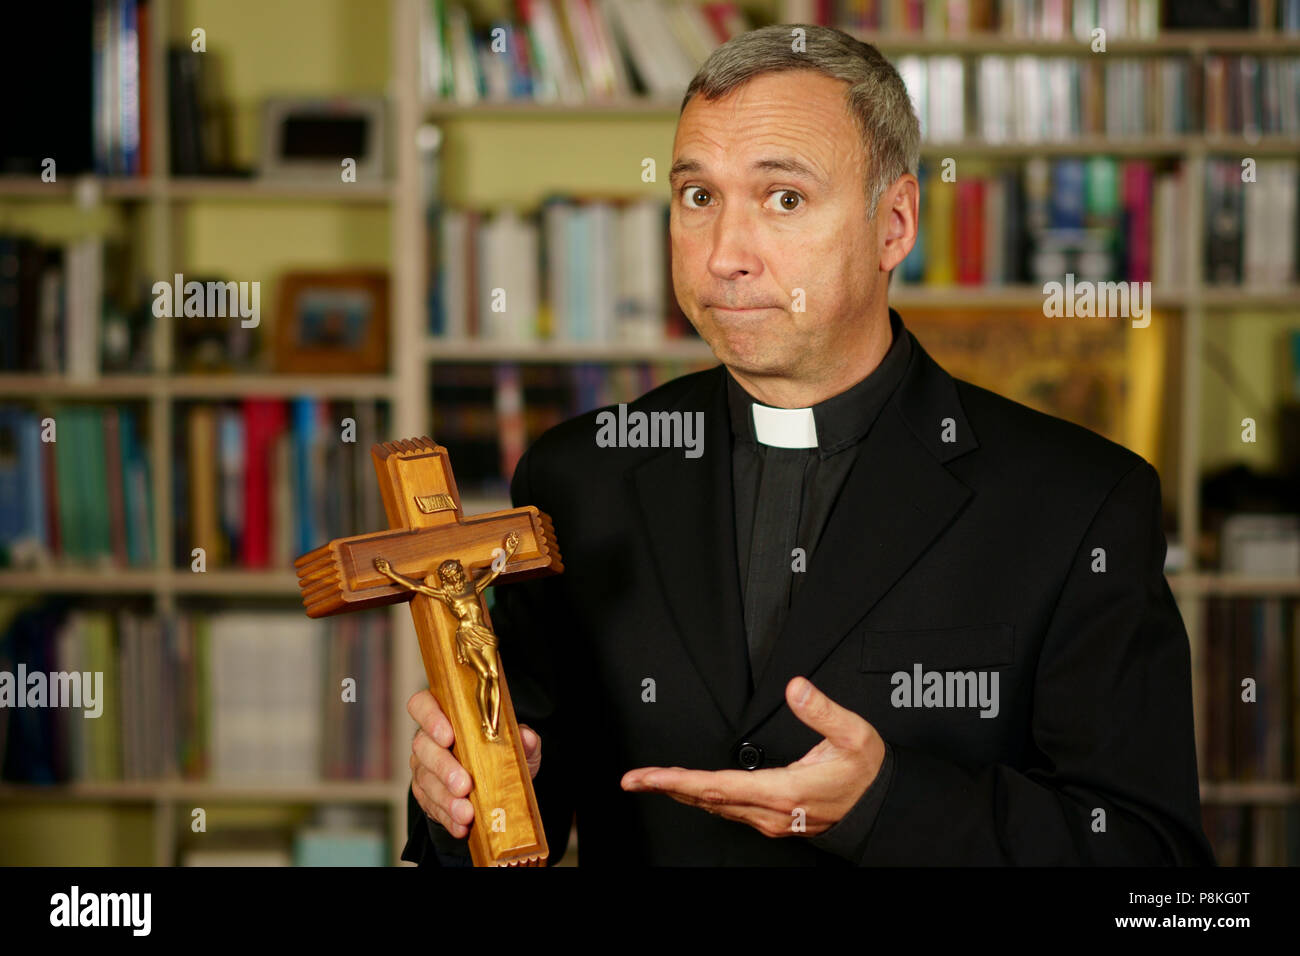 A good looking catholic priest is showing a crucifix. He seriously looks at us with interest, pensiveness and proselytising. - Stock Image